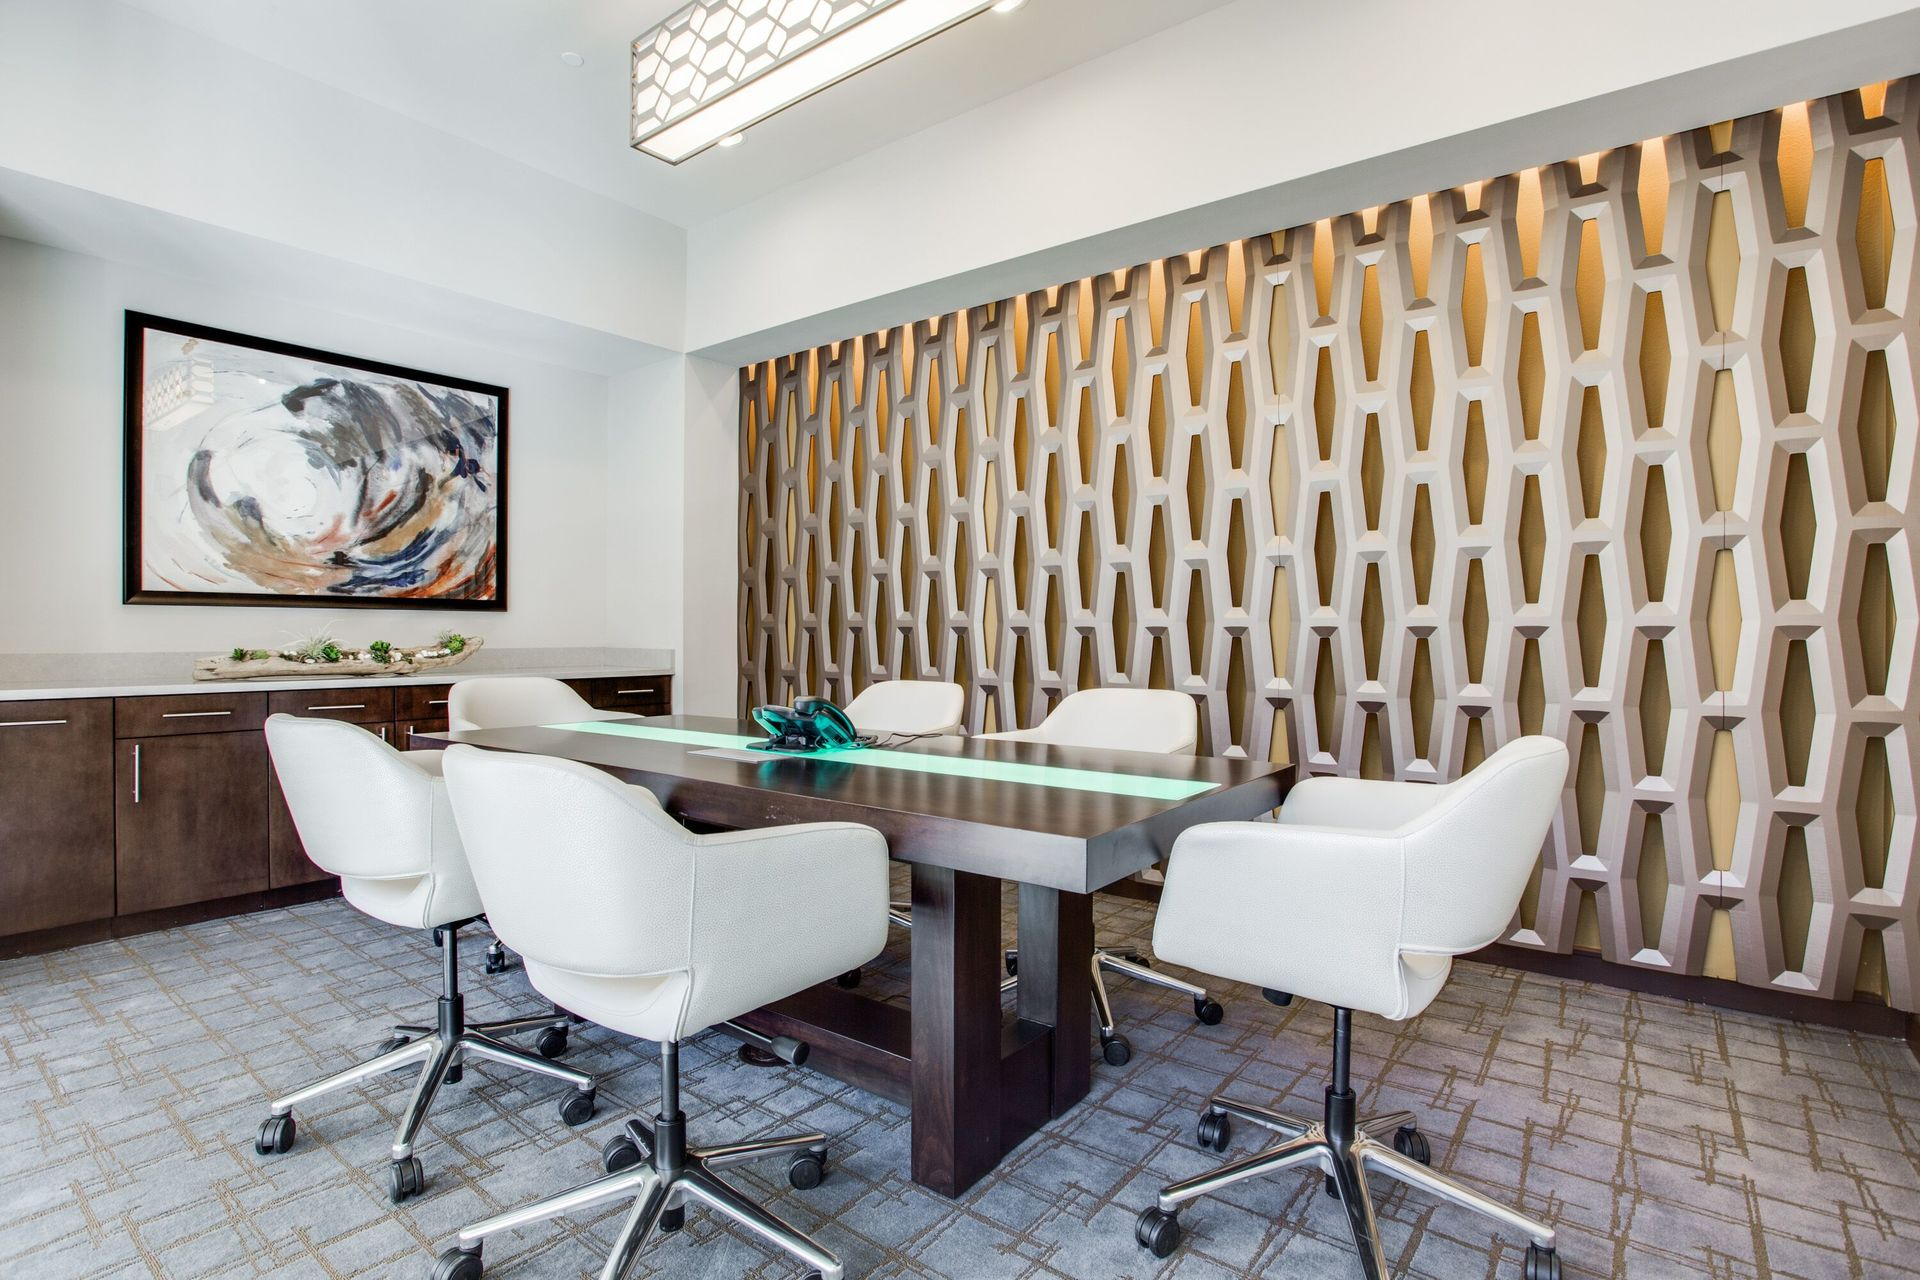 Conference room at the Stella apartments located in Dallas, TX, by Hensley Lamkin Rachel.